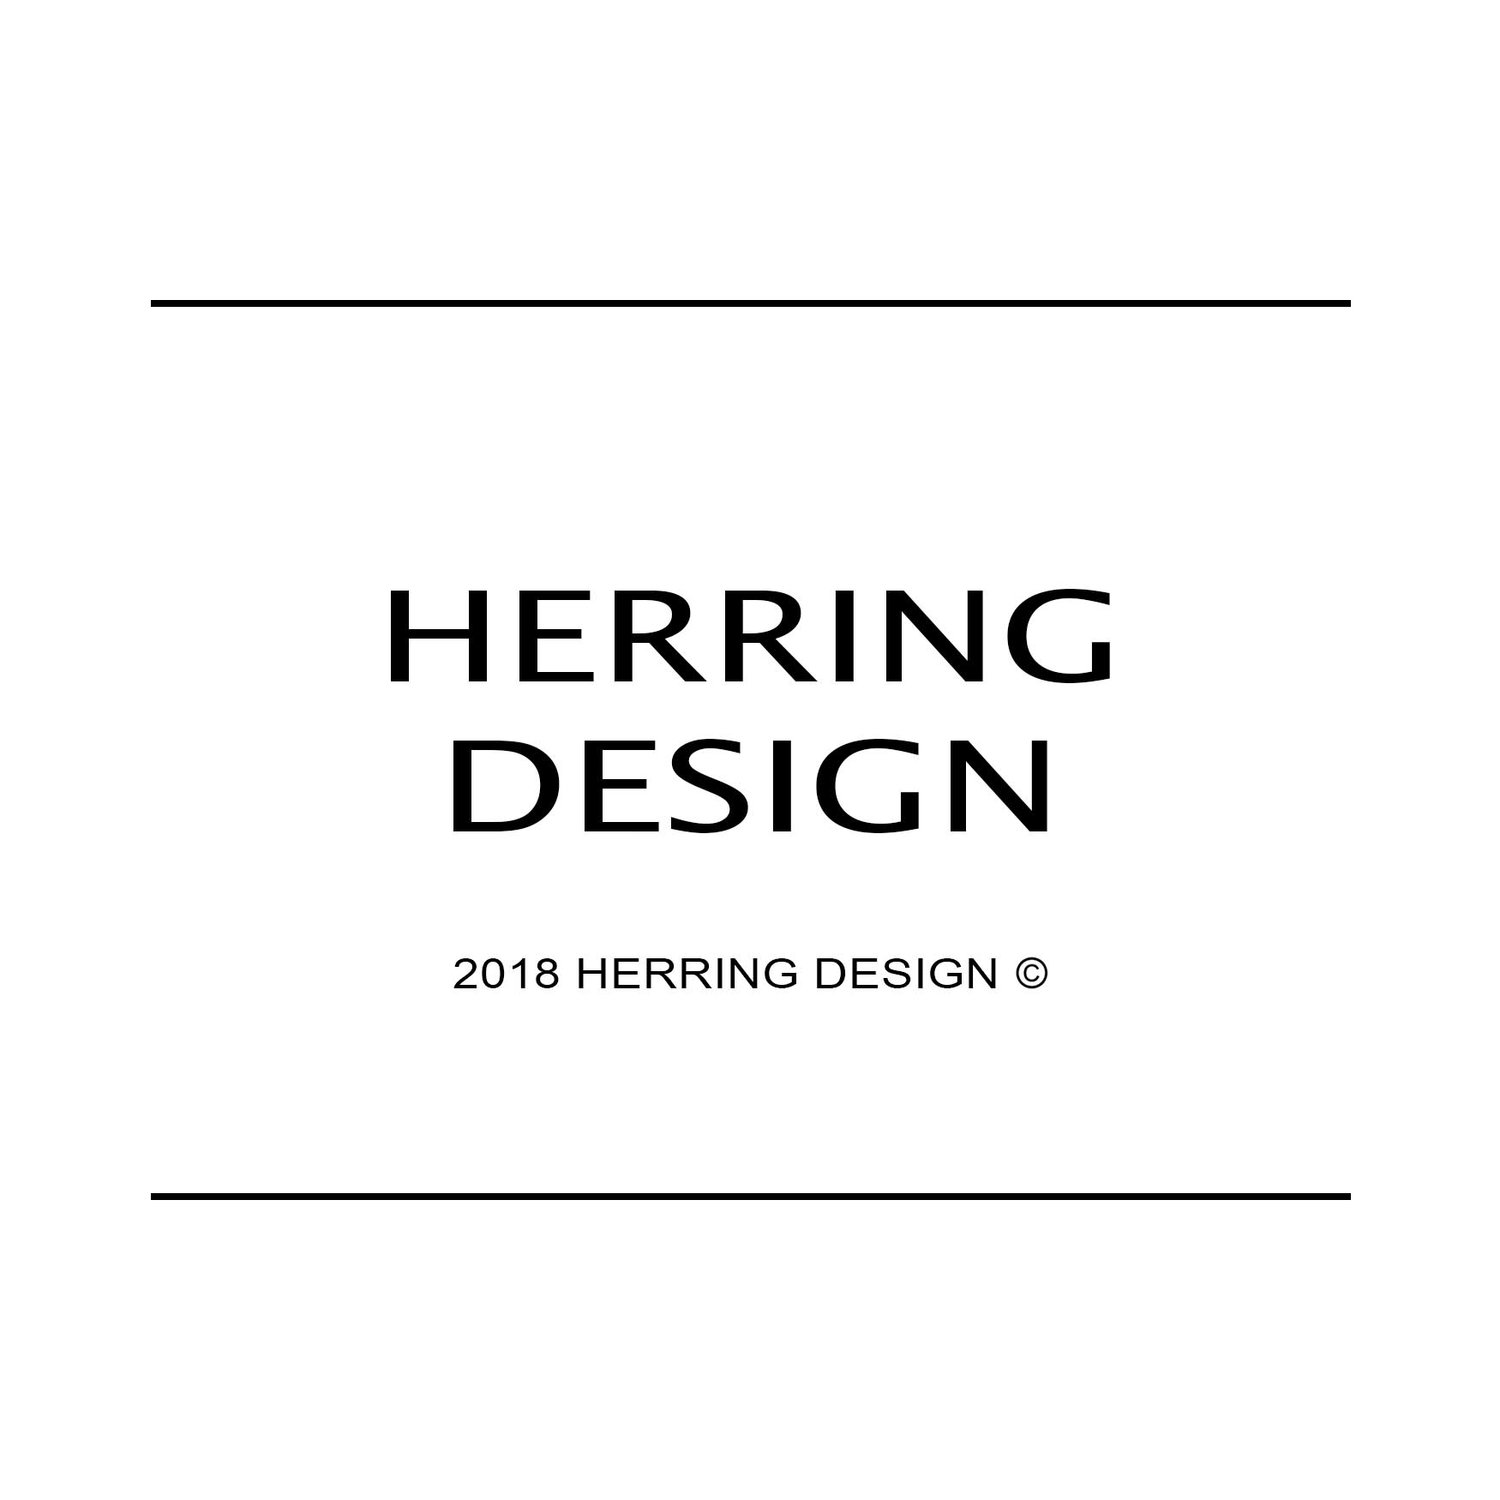 Herring Design